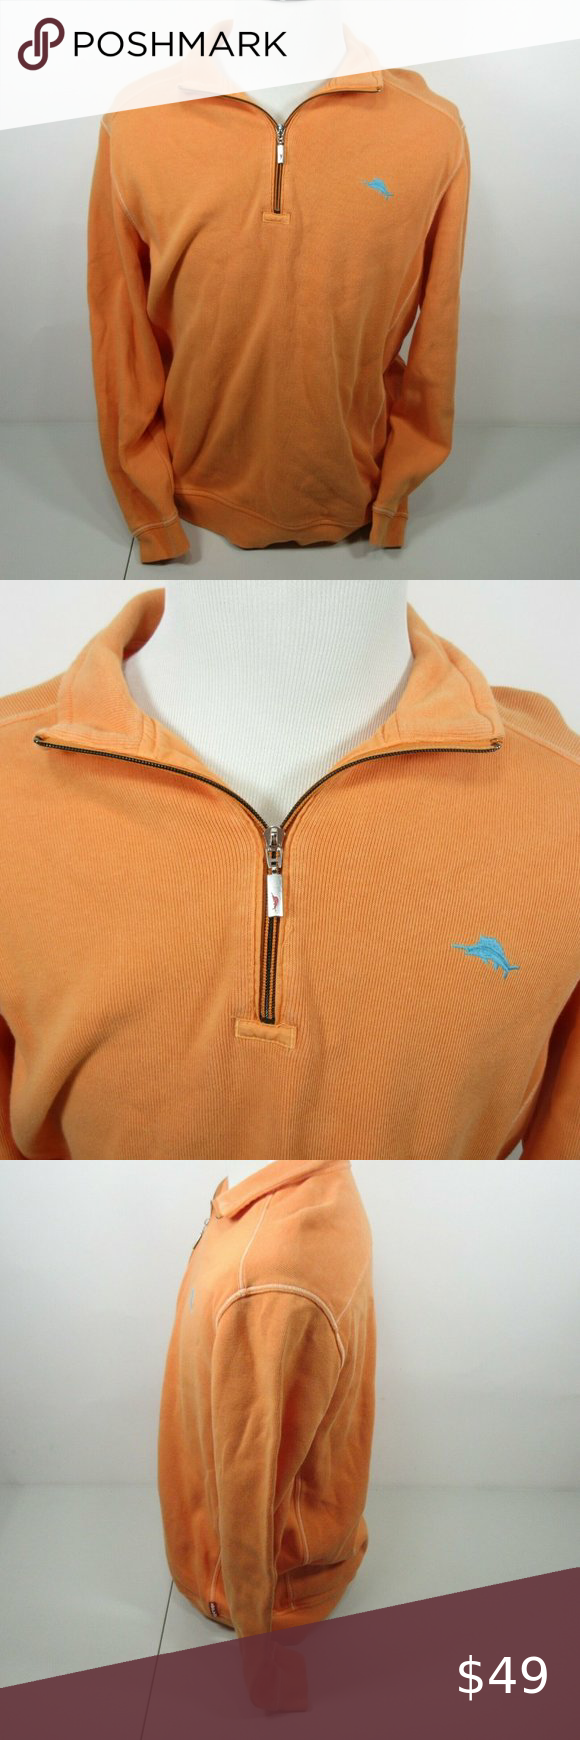 Tommy Bahama Relax 1 4 Zip Marlin Pullover Sweater Tommy Bahama Men S Relax Orange Large 1 4 Zip Marlin Pullover Sweaters Pullover Sweater Sweatshirts Pullover [ 1740 x 580 Pixel ]